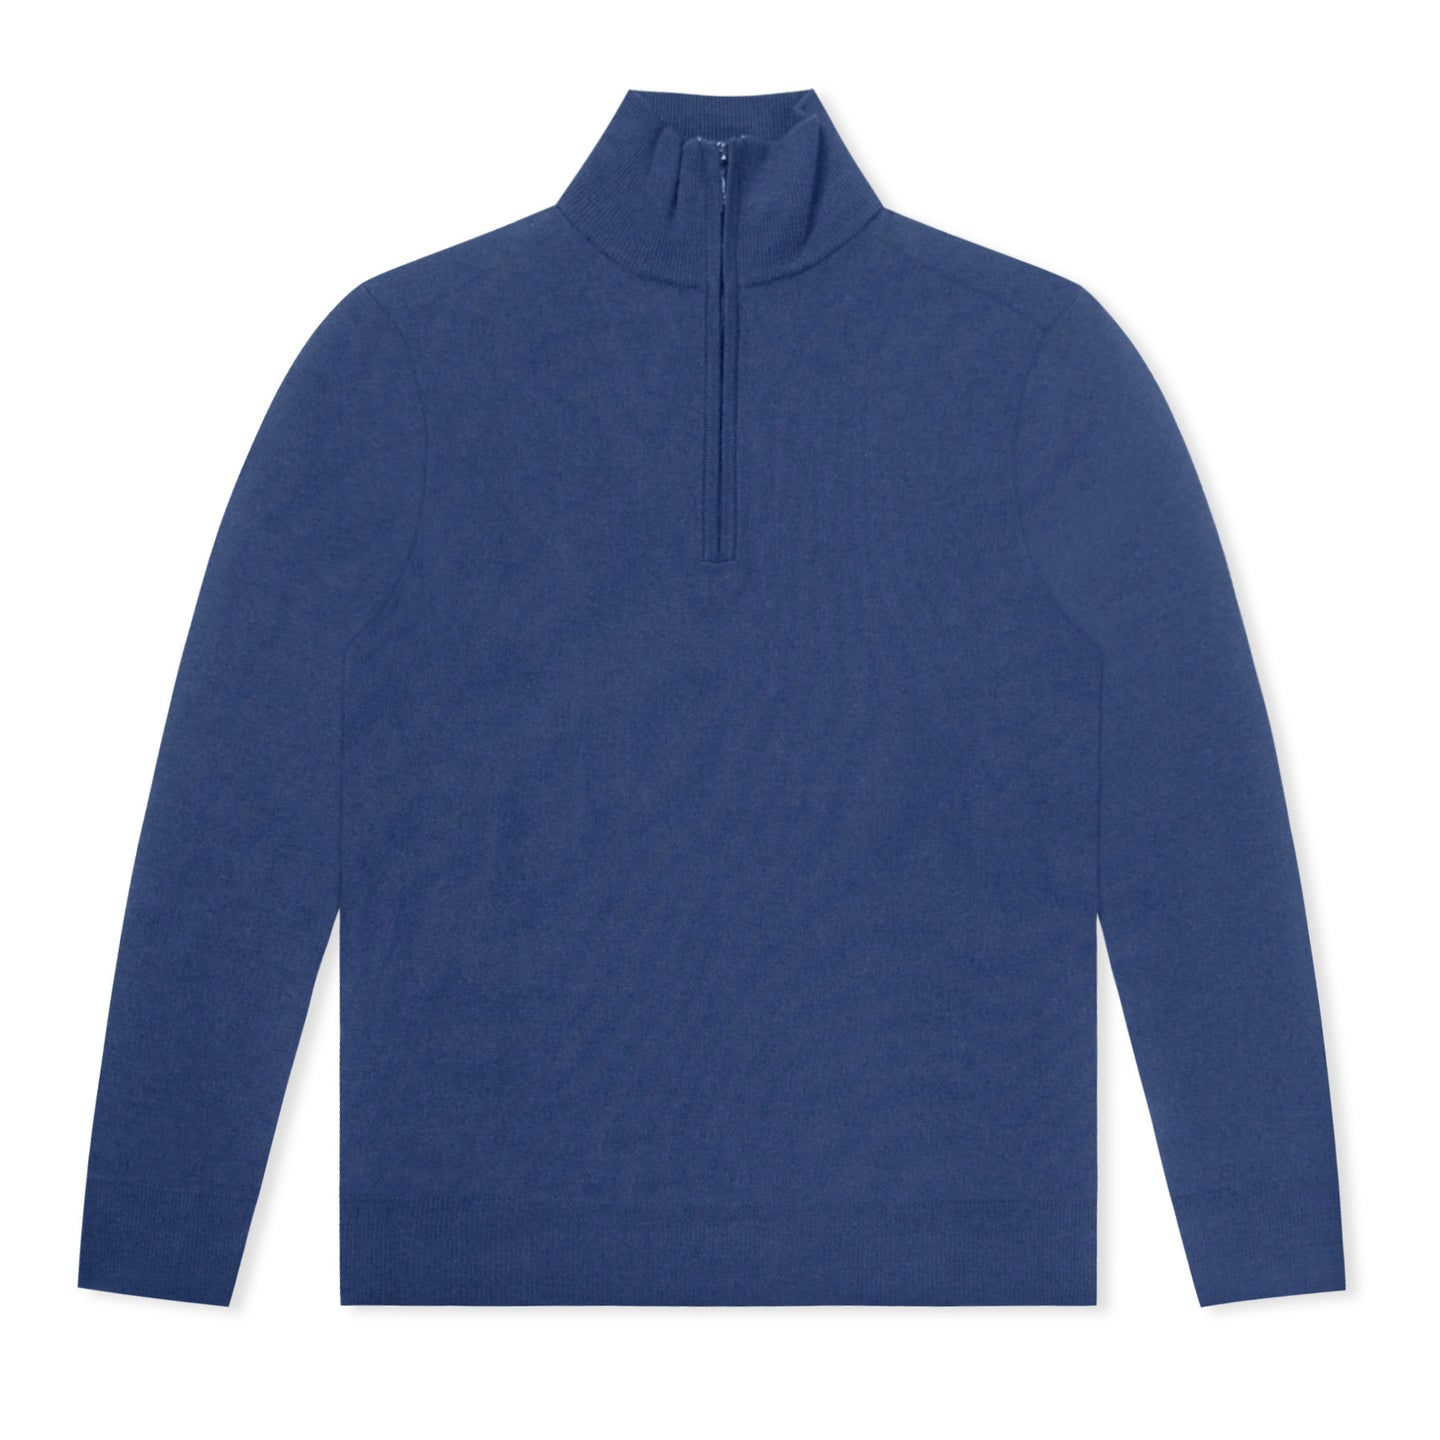 Navy Untitled Atelier Merino Wool Half Zip Jumper